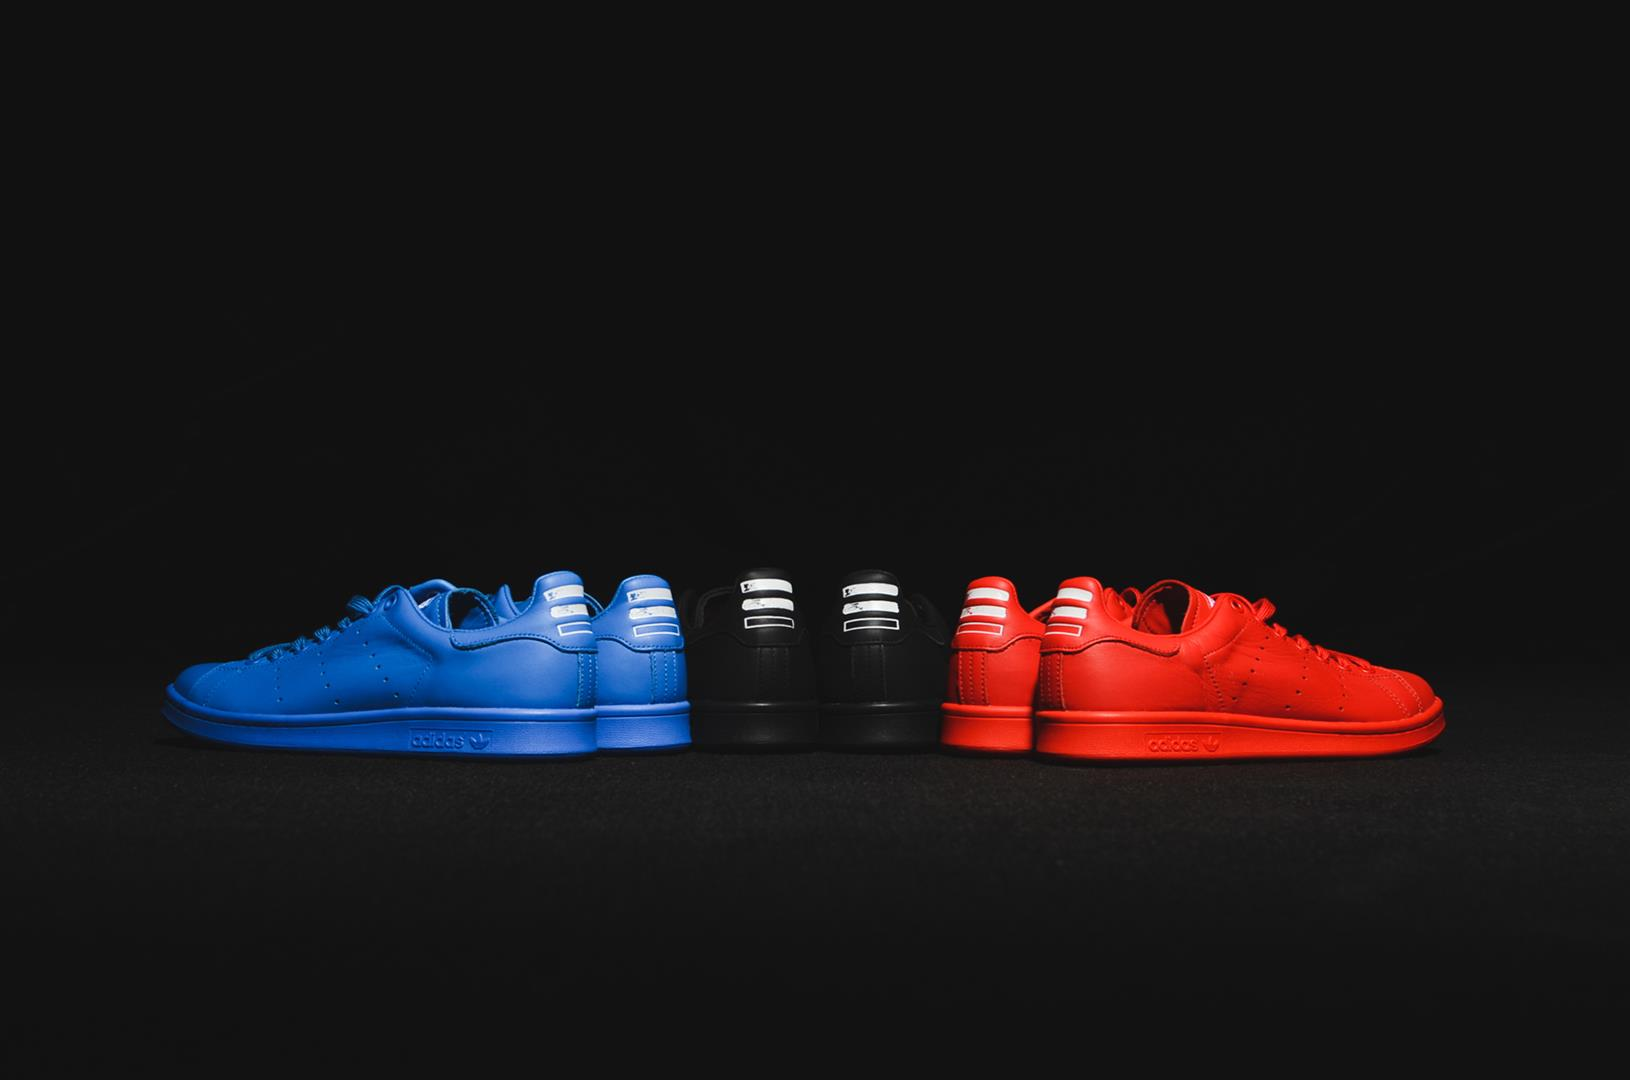 hot sale online 30def 7b716 adidas x Pharrell Williams Consortium Solid Pack Collection